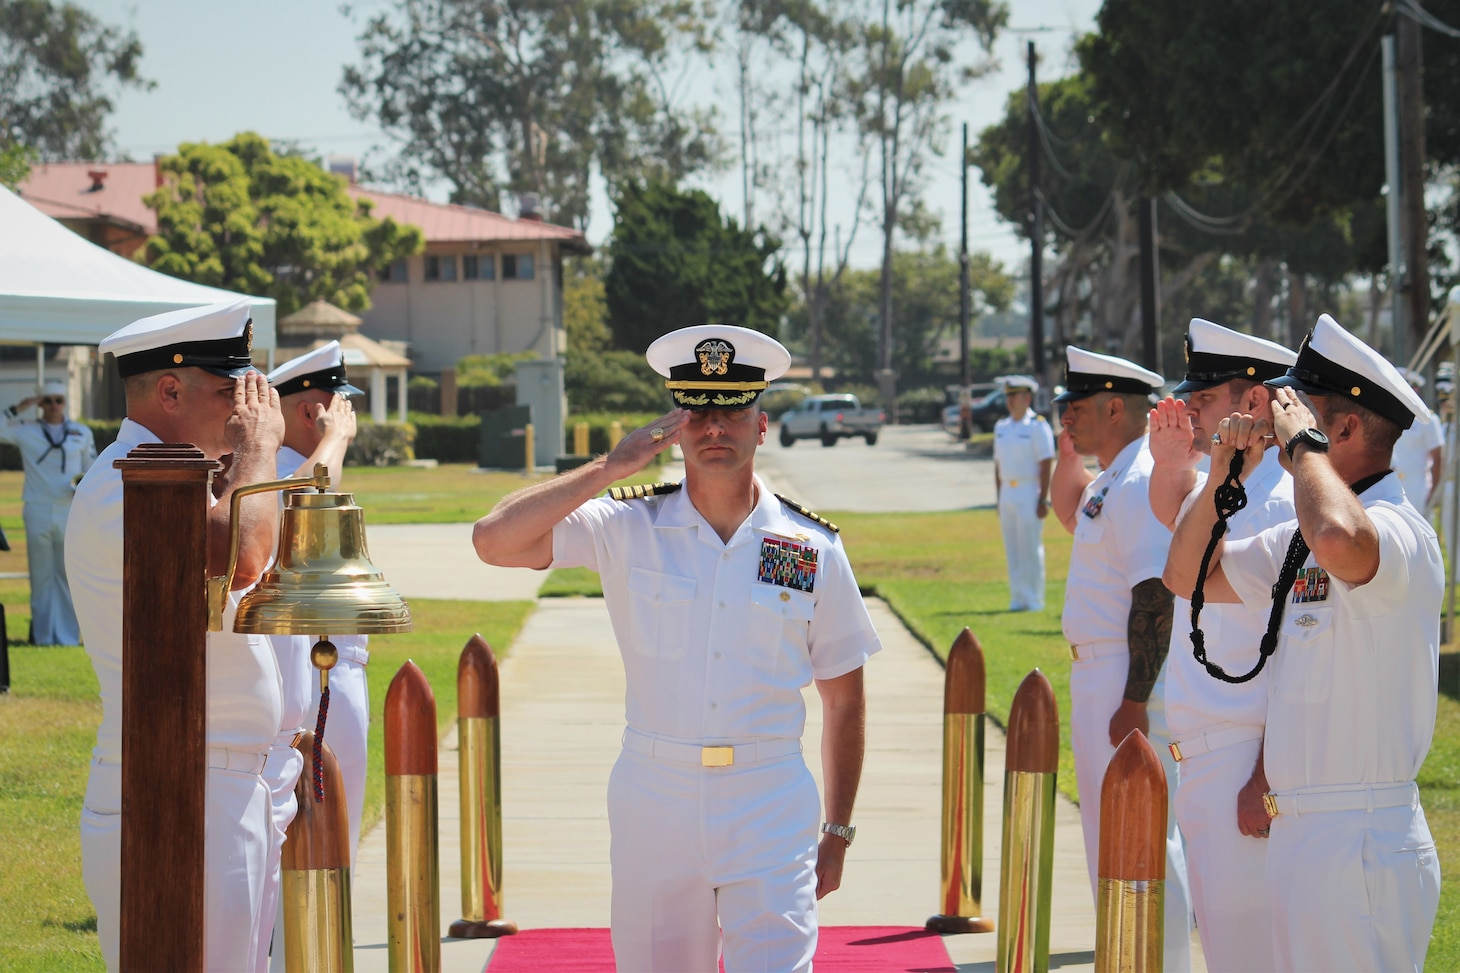 PORT HUENEME, Calif. (Aug. 26, 2021) Capt. Peter Maculan pipes ashore as the new commanding officer of the Center for Seabees and Facilities Engineering (CSFE) during a change of command ceremony Aug. 26. CSFE trains civil engineering corps officers, enlisted Seabees and environmental professionals. (U.S. Navy photo by Amber Vaglica)